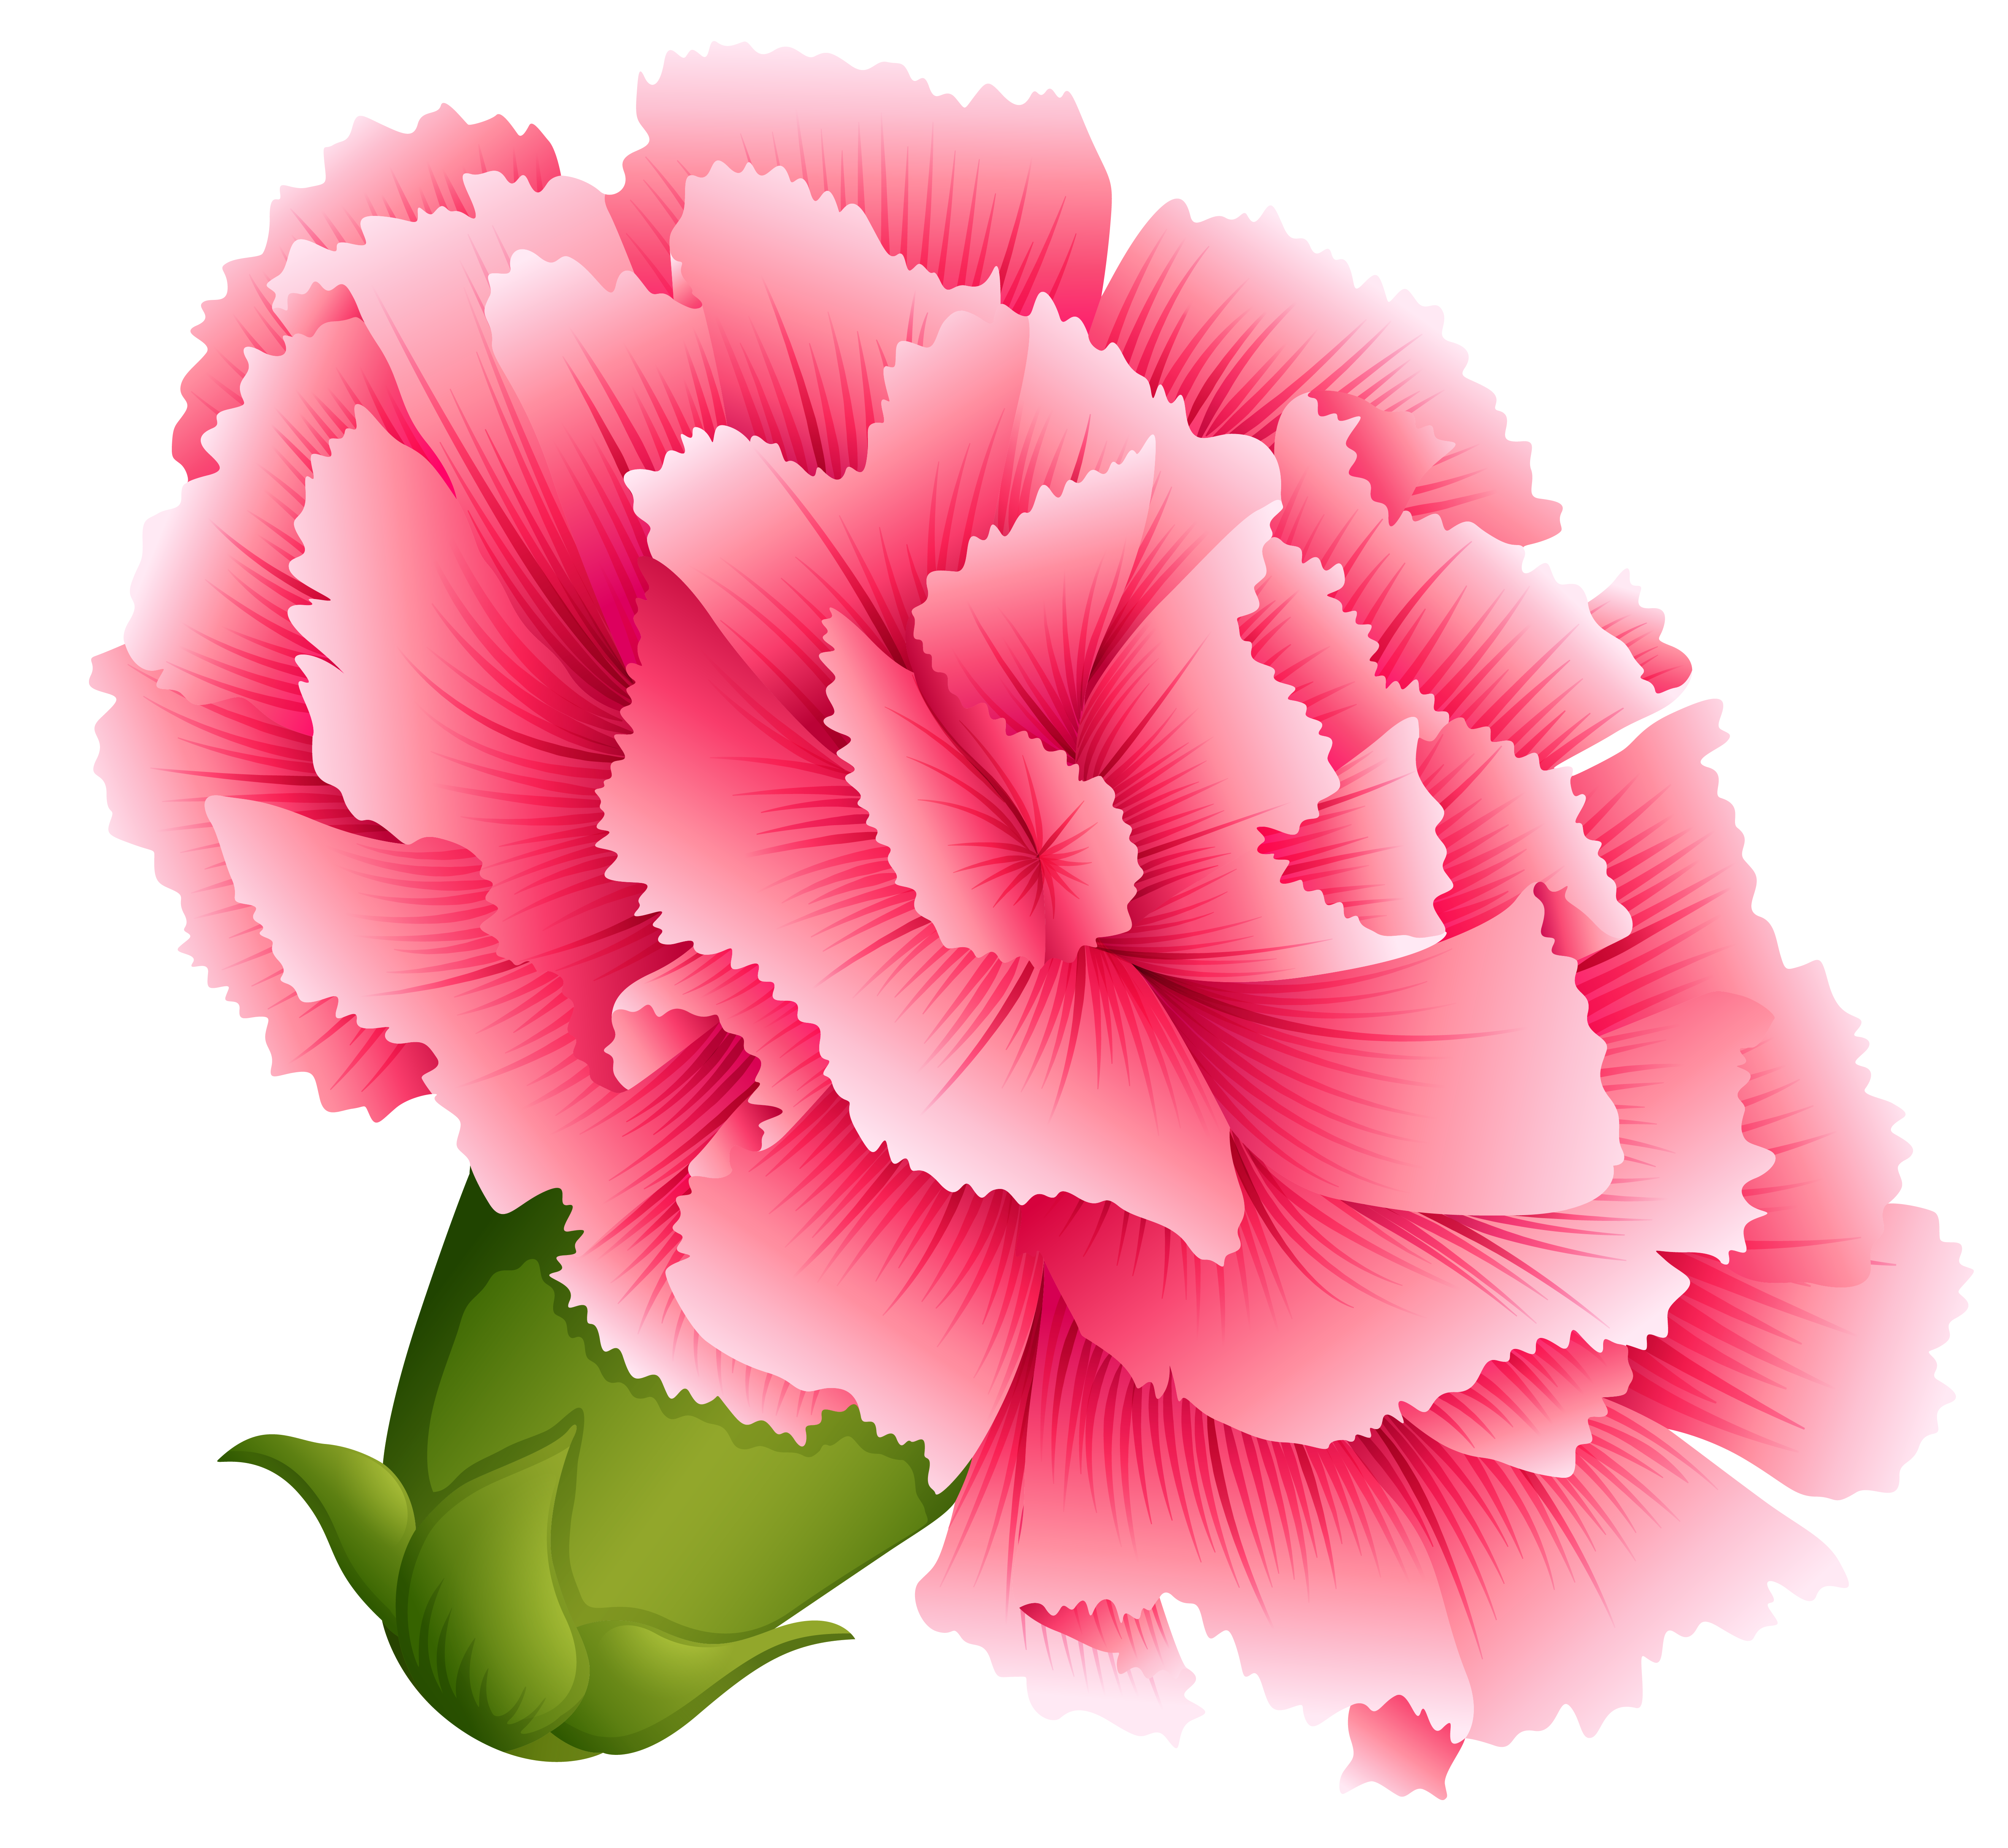 carnation clipart clipground red carnation clipart carnation clipart black and white